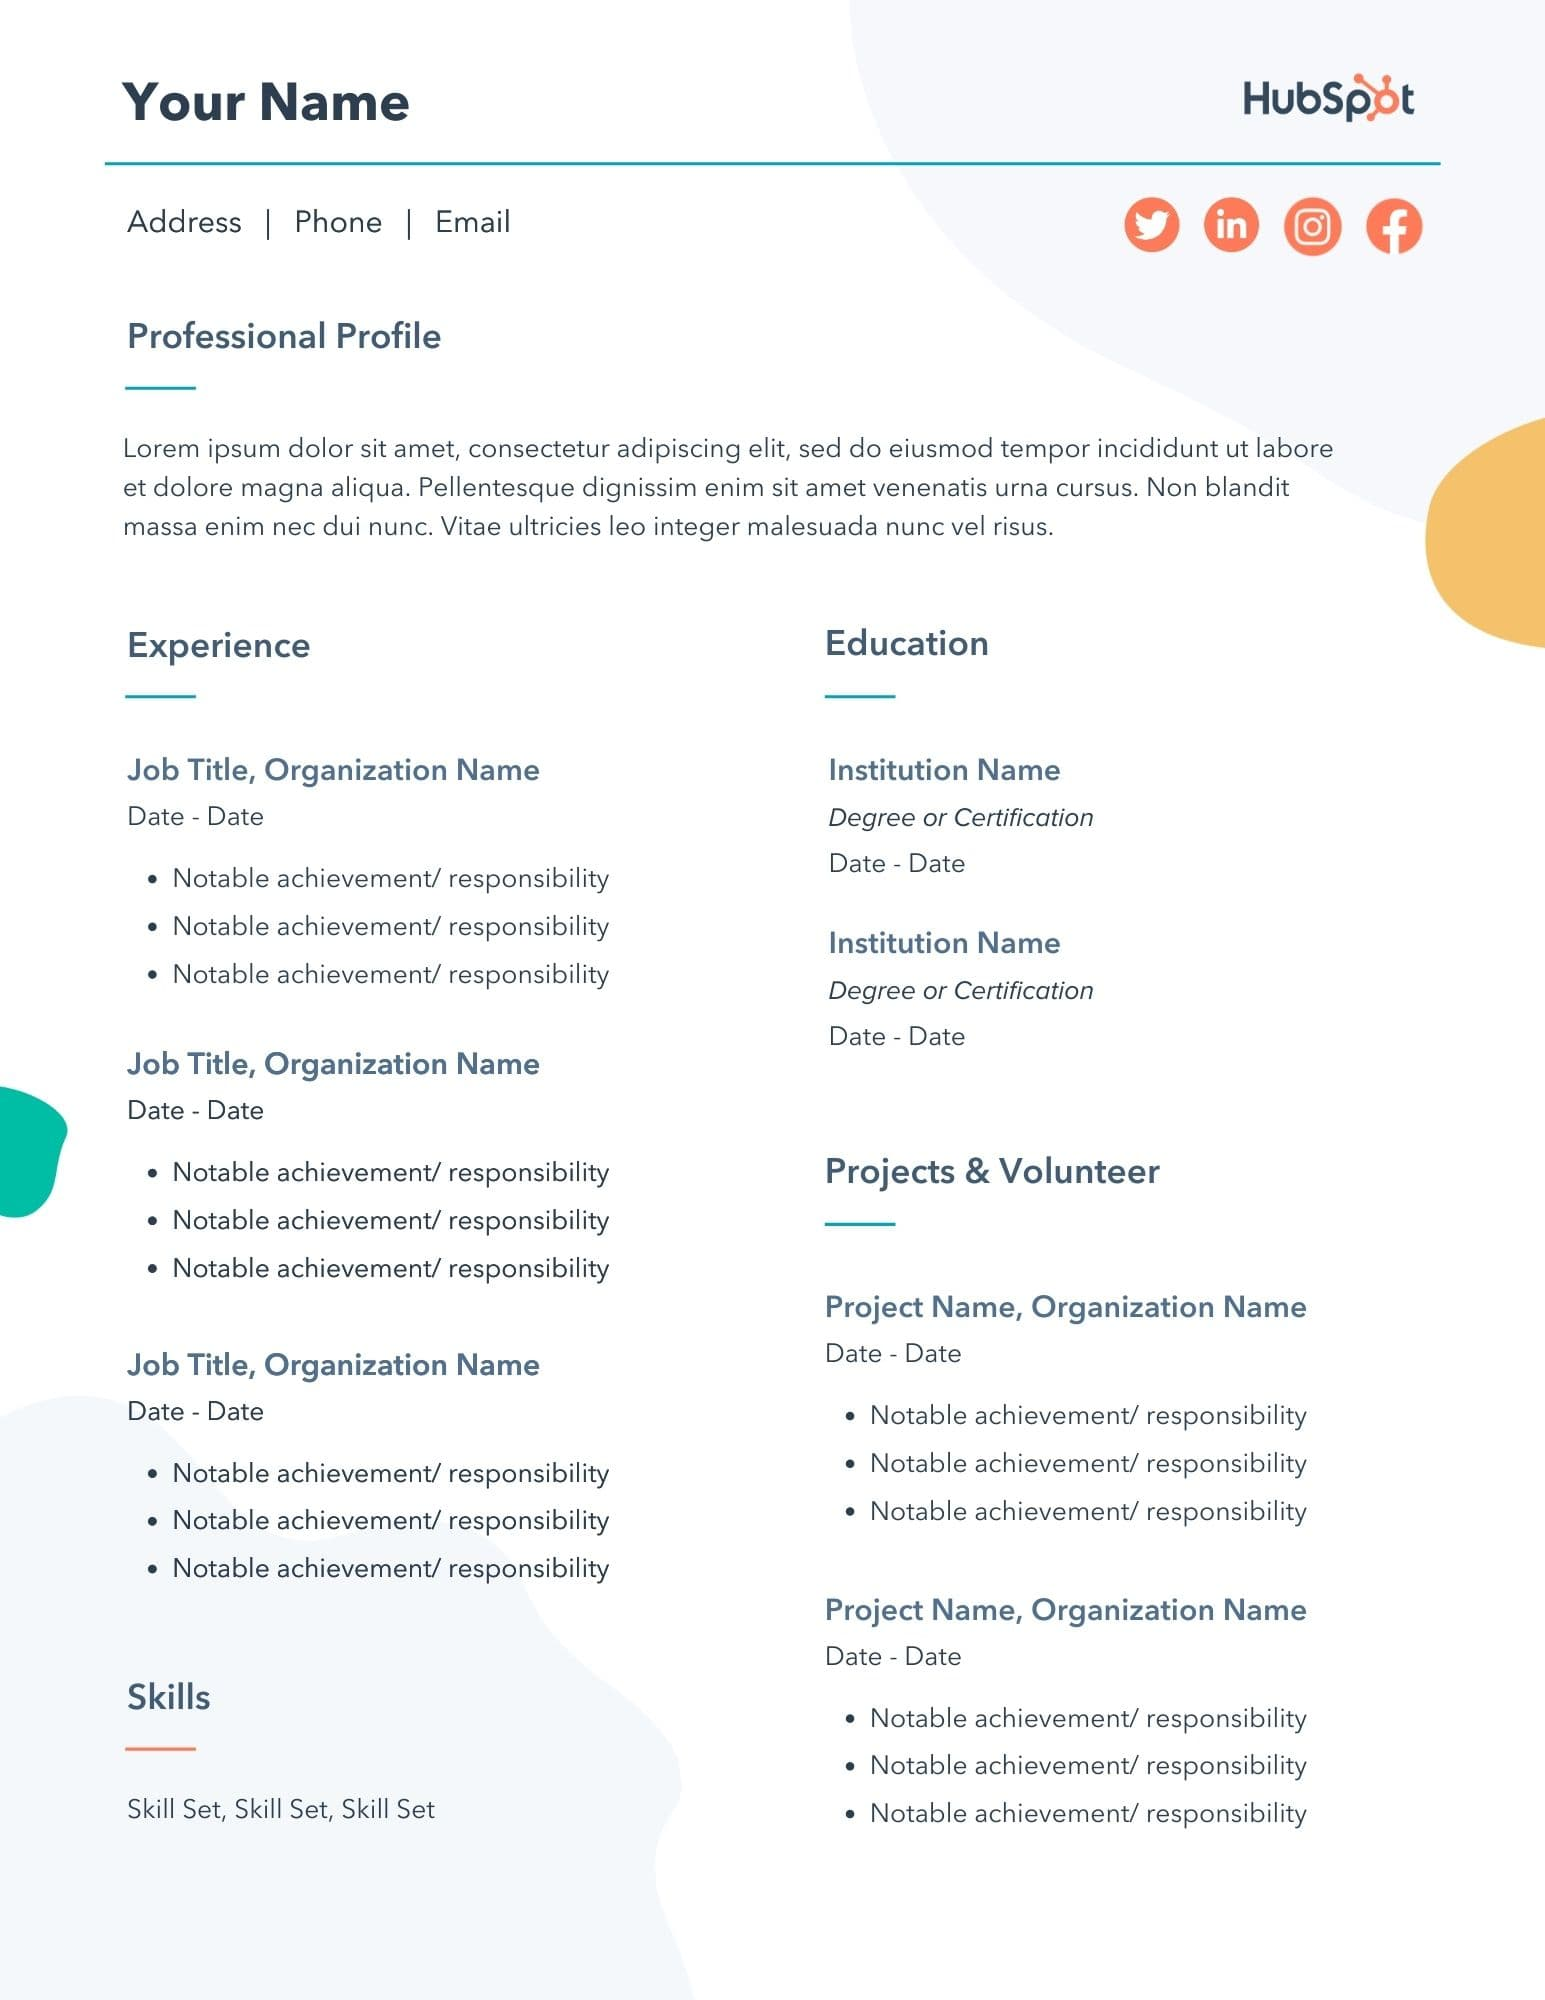 free resume templates for microsoft word to make your own medical template firefighter Resume Free Medical Resume Templates Microsoft Word